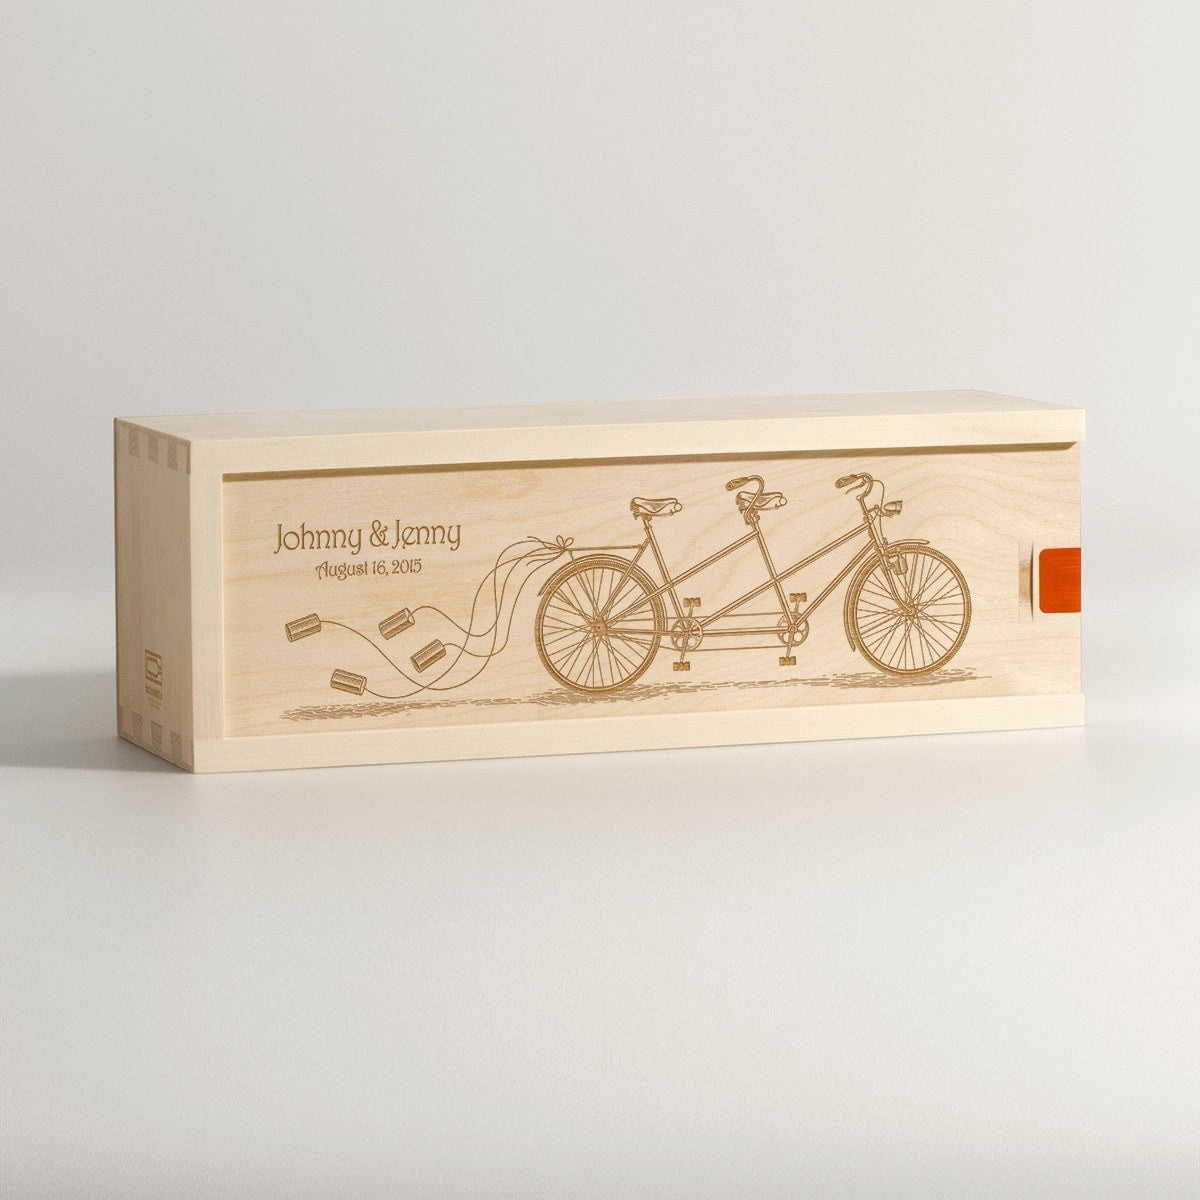 Pedal Together - Wedding Wine Box - Main Image